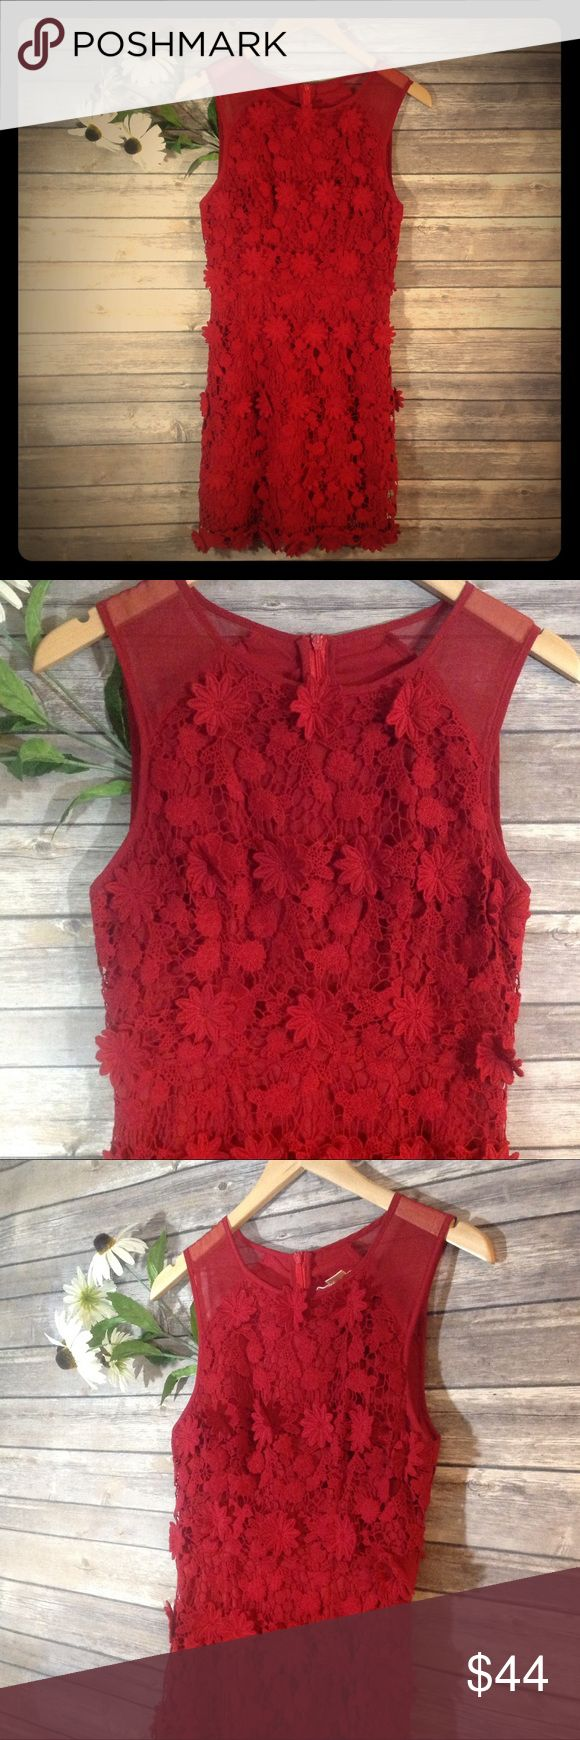 Urban Outfitters Bella Rosa Daisy Crochet Dress This dress is called Bella Rosa and it's by Thistle Pearl for Urban Outfitters. It is the perfect deep red for fall. This dress has mesh shoulder straps and the rest of the dress is an open knit crochet with floral appliqués all over! So cute and 3-D! Has a back zipper and is fully lined. In Great used condition. Size 2. Urban Outfitters Dresses Mini